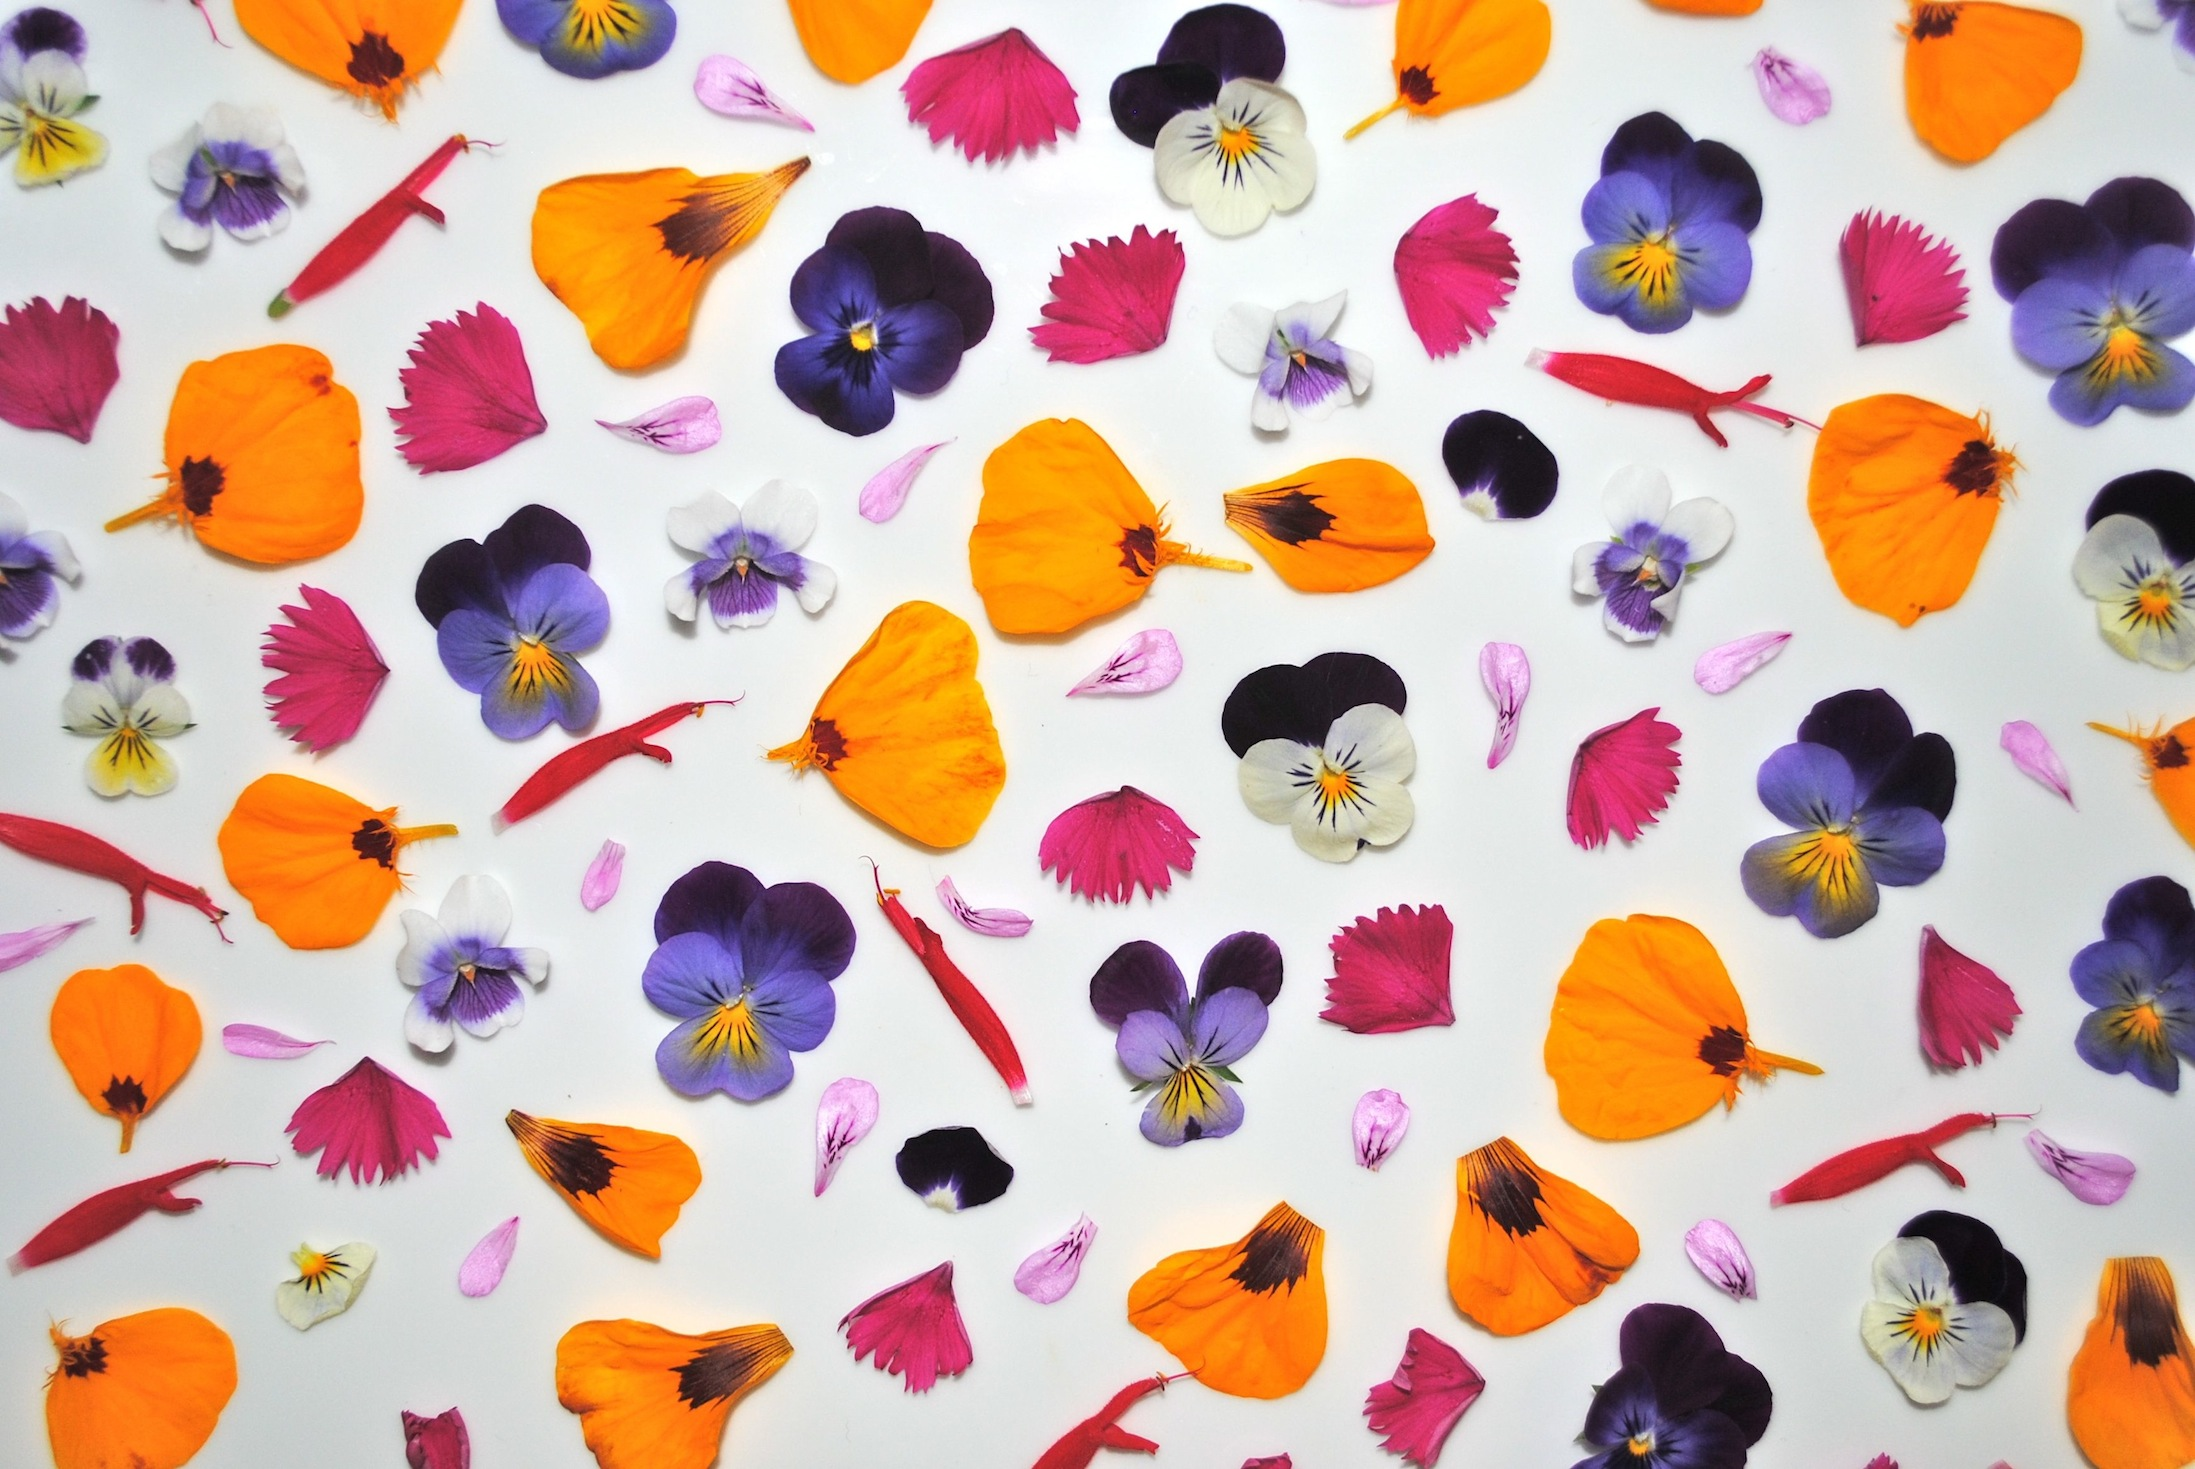 edible-flowers-banner-anna-gregory